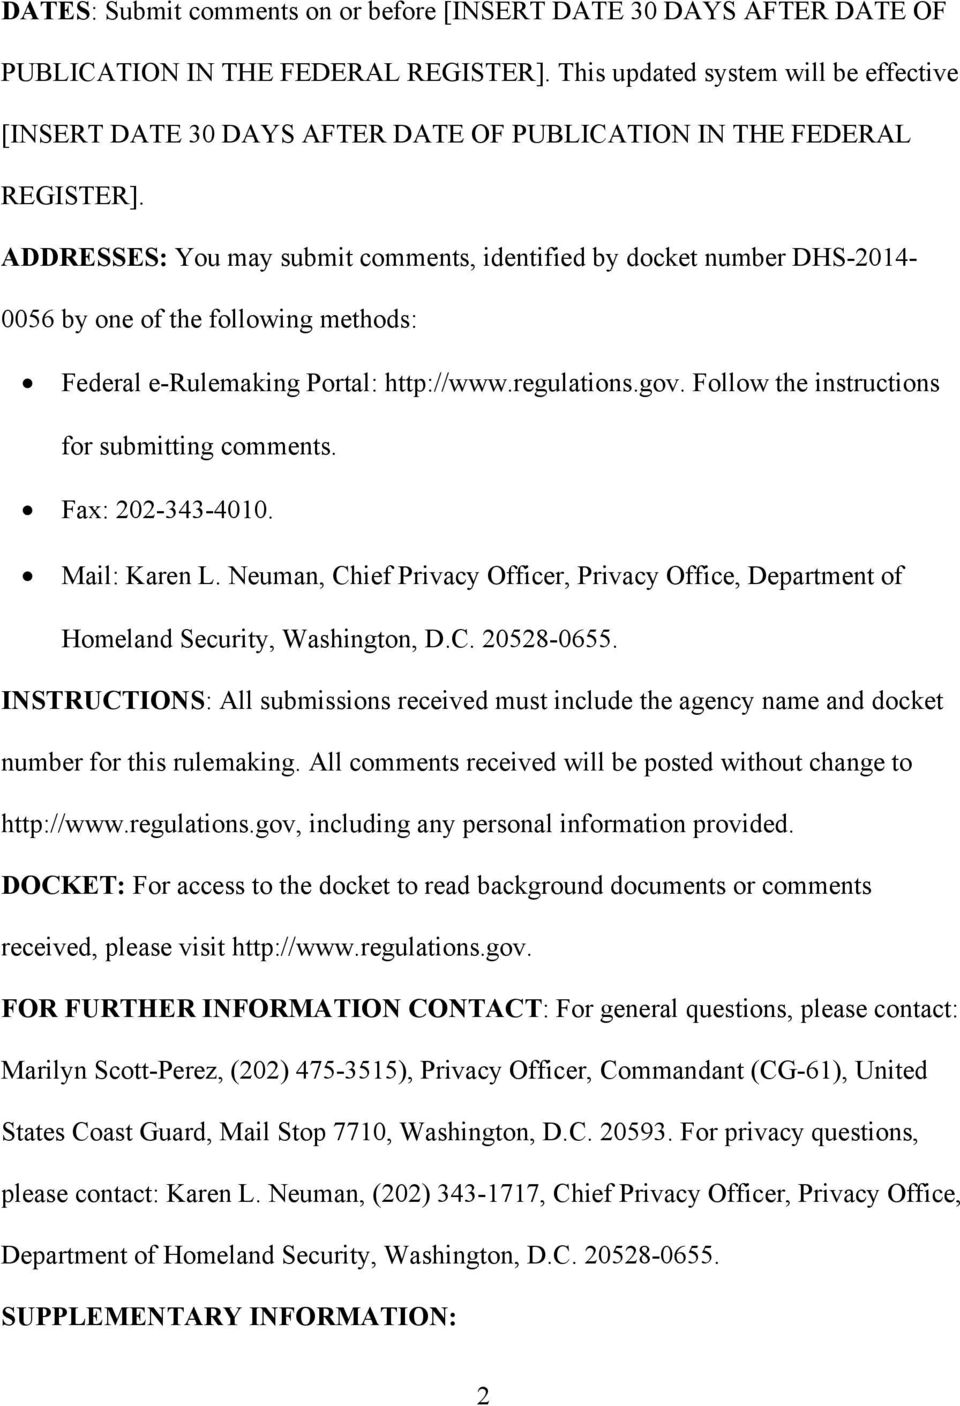 ADDRESSES: You may submit comments, identified by docket number DHS-2014-0056 by one of the following methods: Federal e-rulemaking Portal: http://www.regulations.gov.